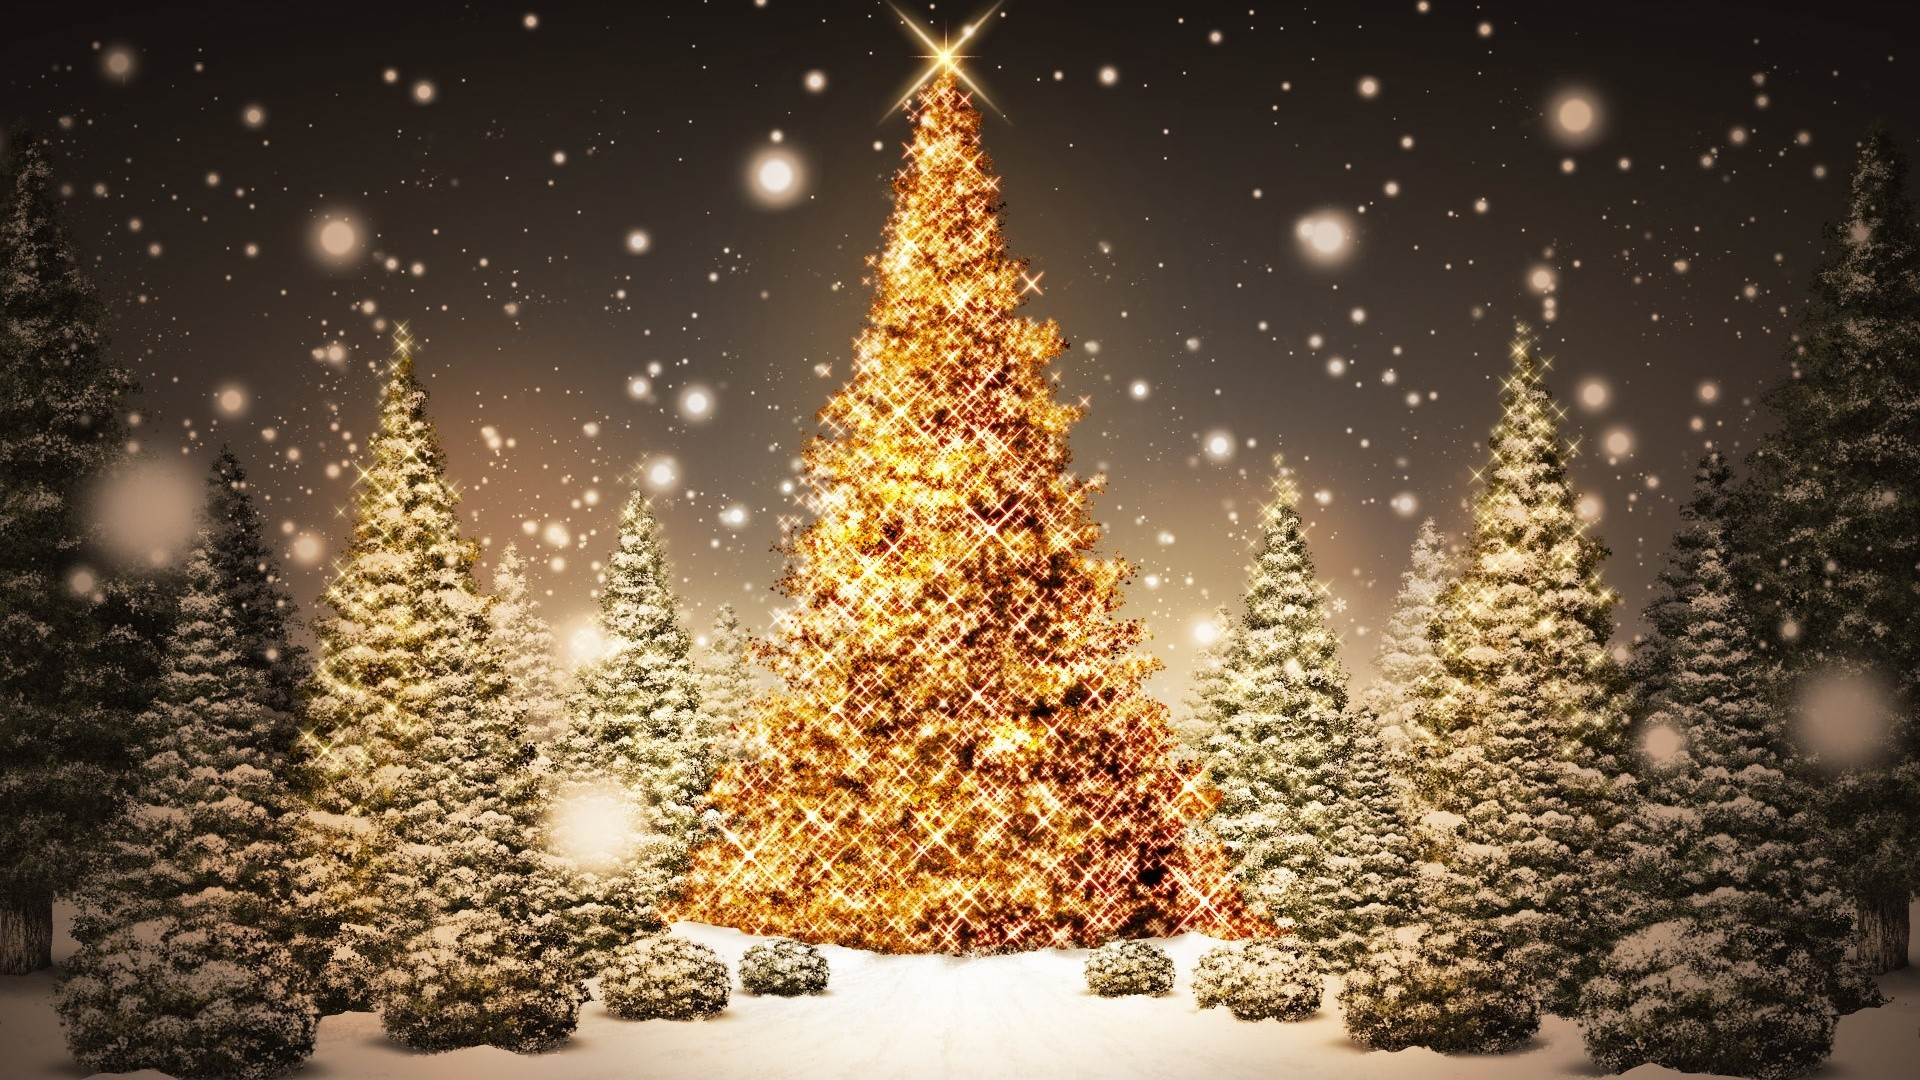 1920x1080 Christmas Tree Wallpapers. 16 HD Christmas Tree Desktop Wallpapers For Free  Download. christmas